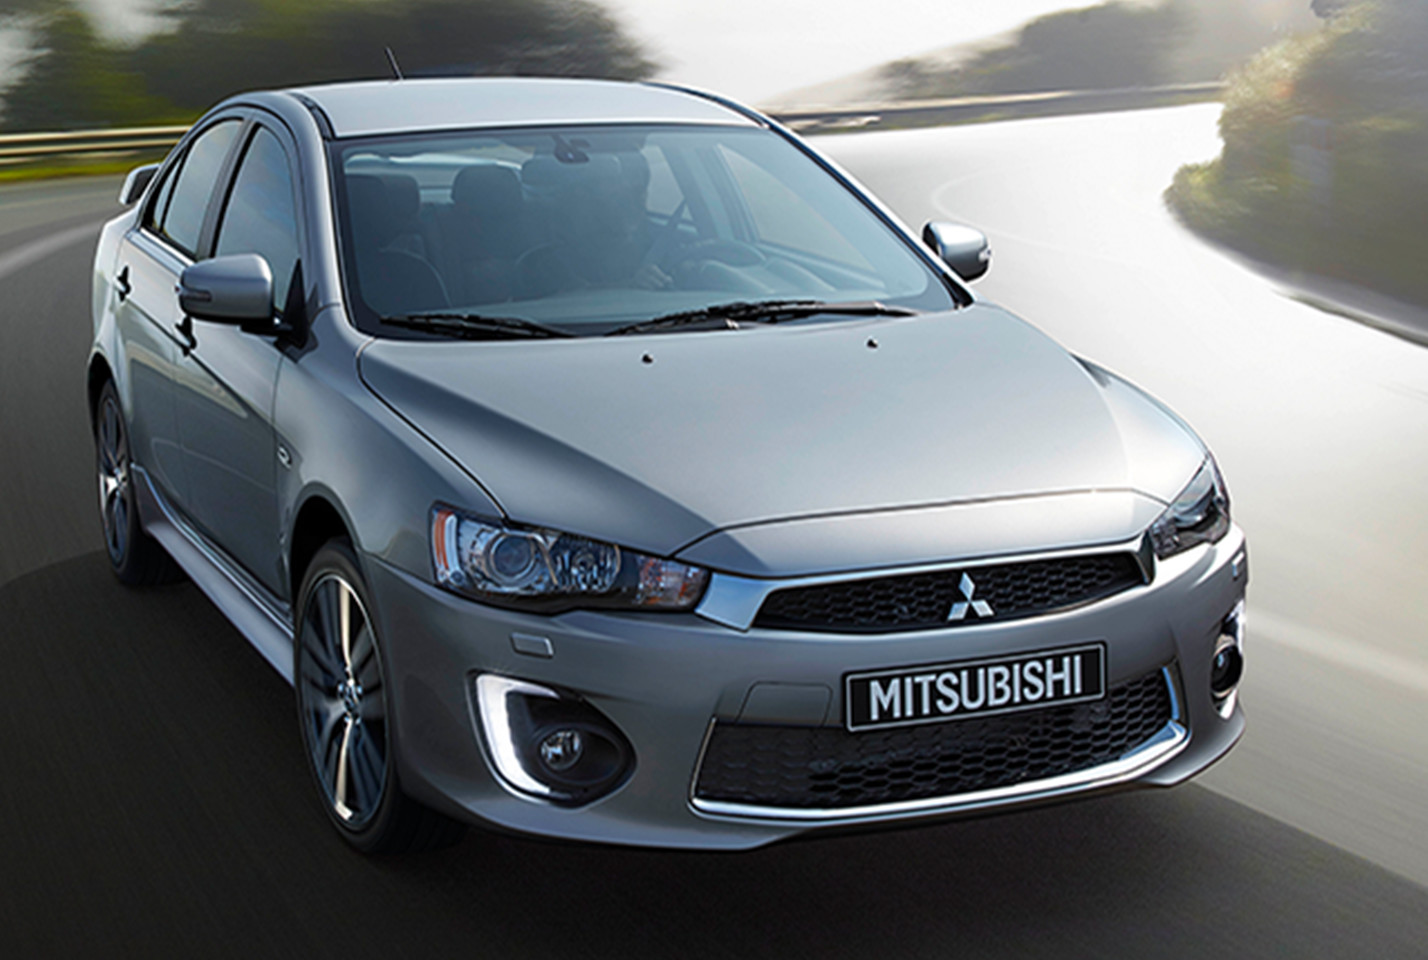 mitsubishi mirage with Products on Products likewise Watch likewise Watch additionally 2018 Mitsubishi Eclipse Cross Debuts With A 1 5 Turbo Starts At 23295 together with Peugeot 4008 Photo.